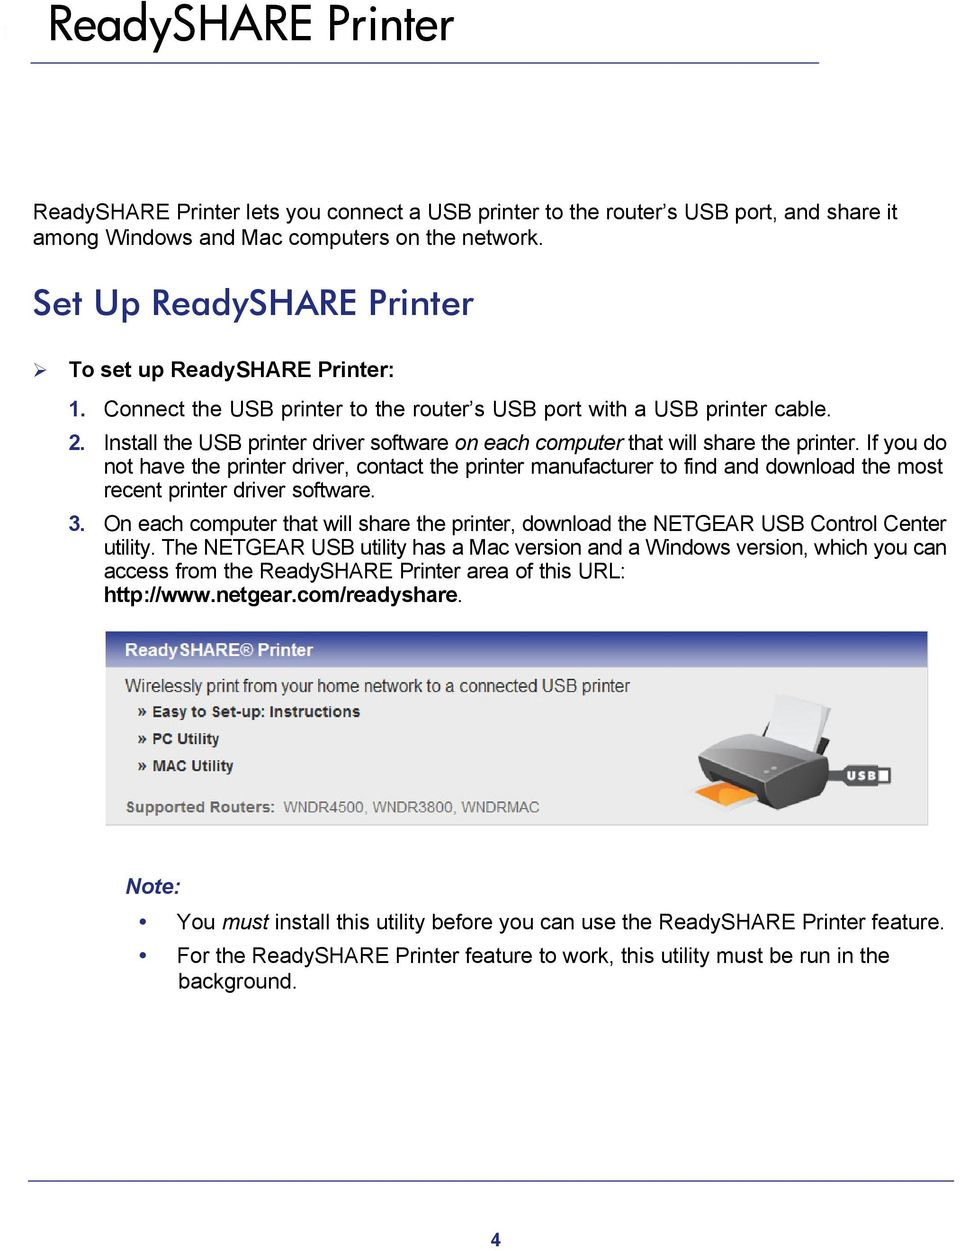 If you do not have the printer driver, contact the printer manufacturer to find and download the most recent printer driver software. 3.